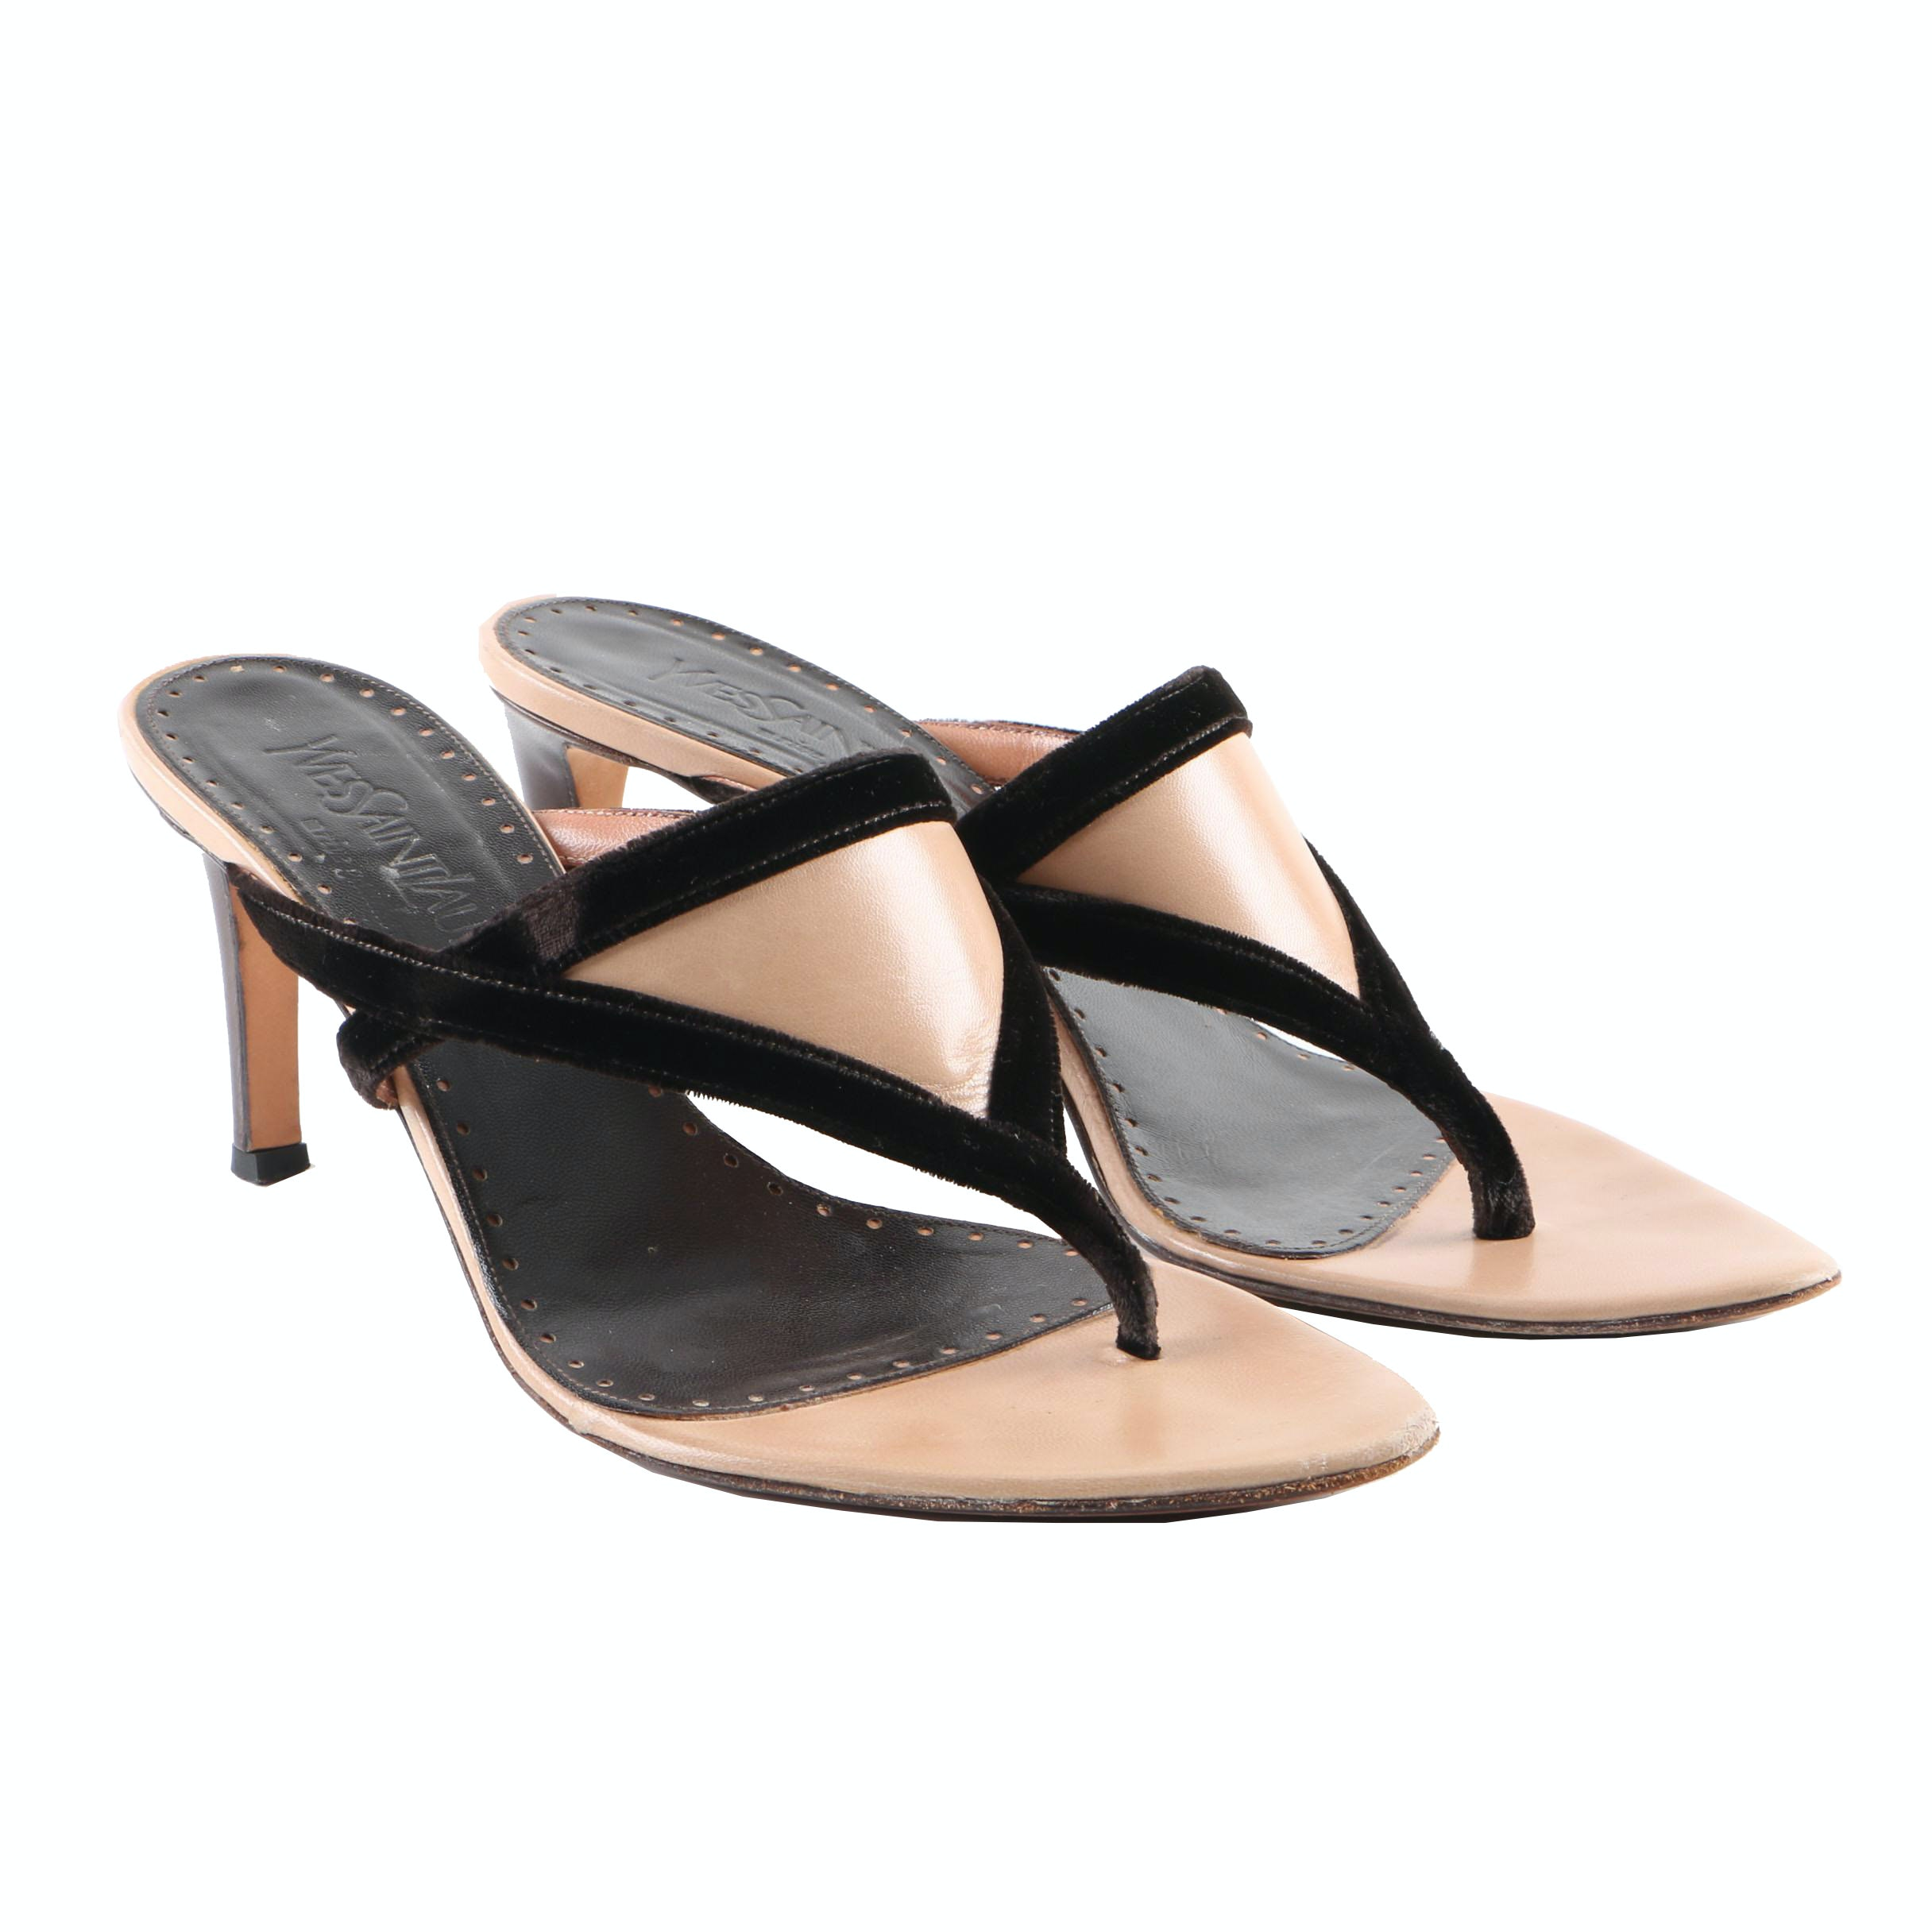 Yves Saint Laurent Beige Leather High-Heeled Sandals with Brown Velveteen Trim